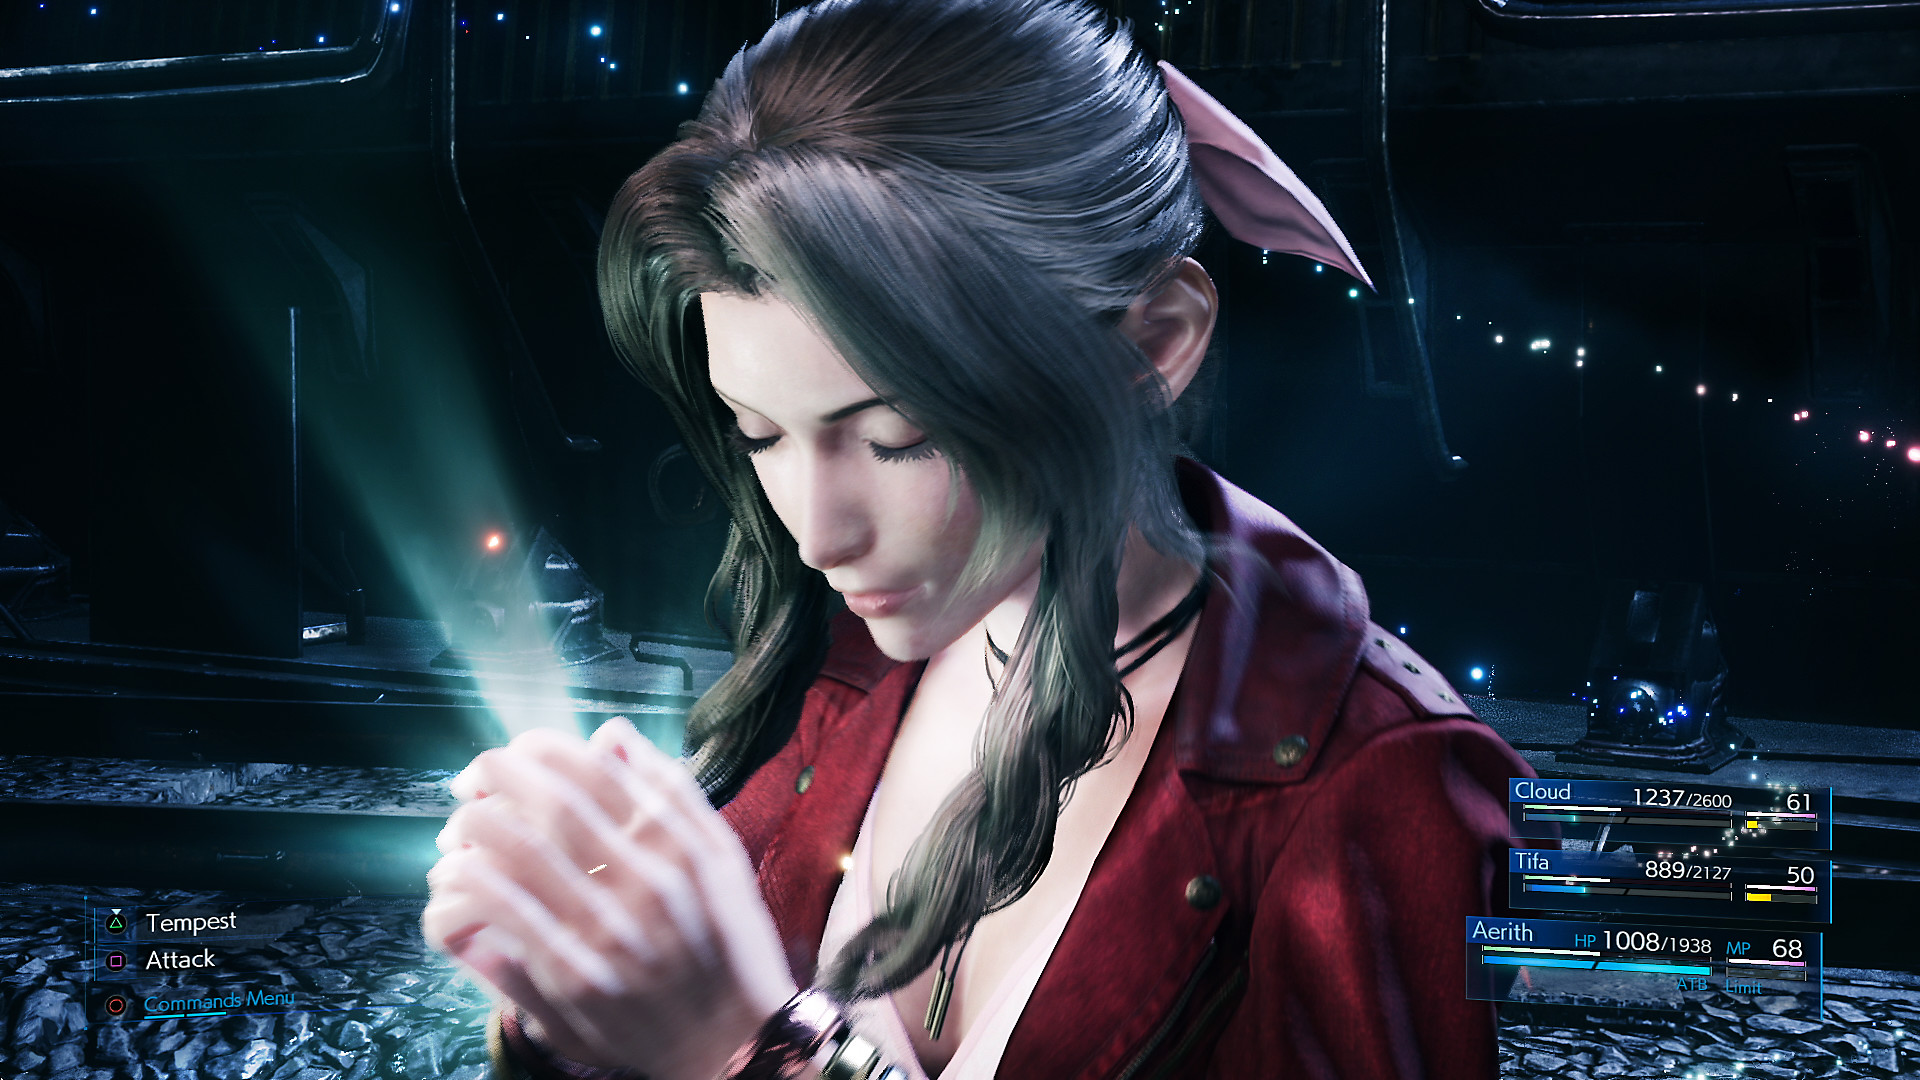 Final Fantasy Vii Remake Título Provisional Game Playstation